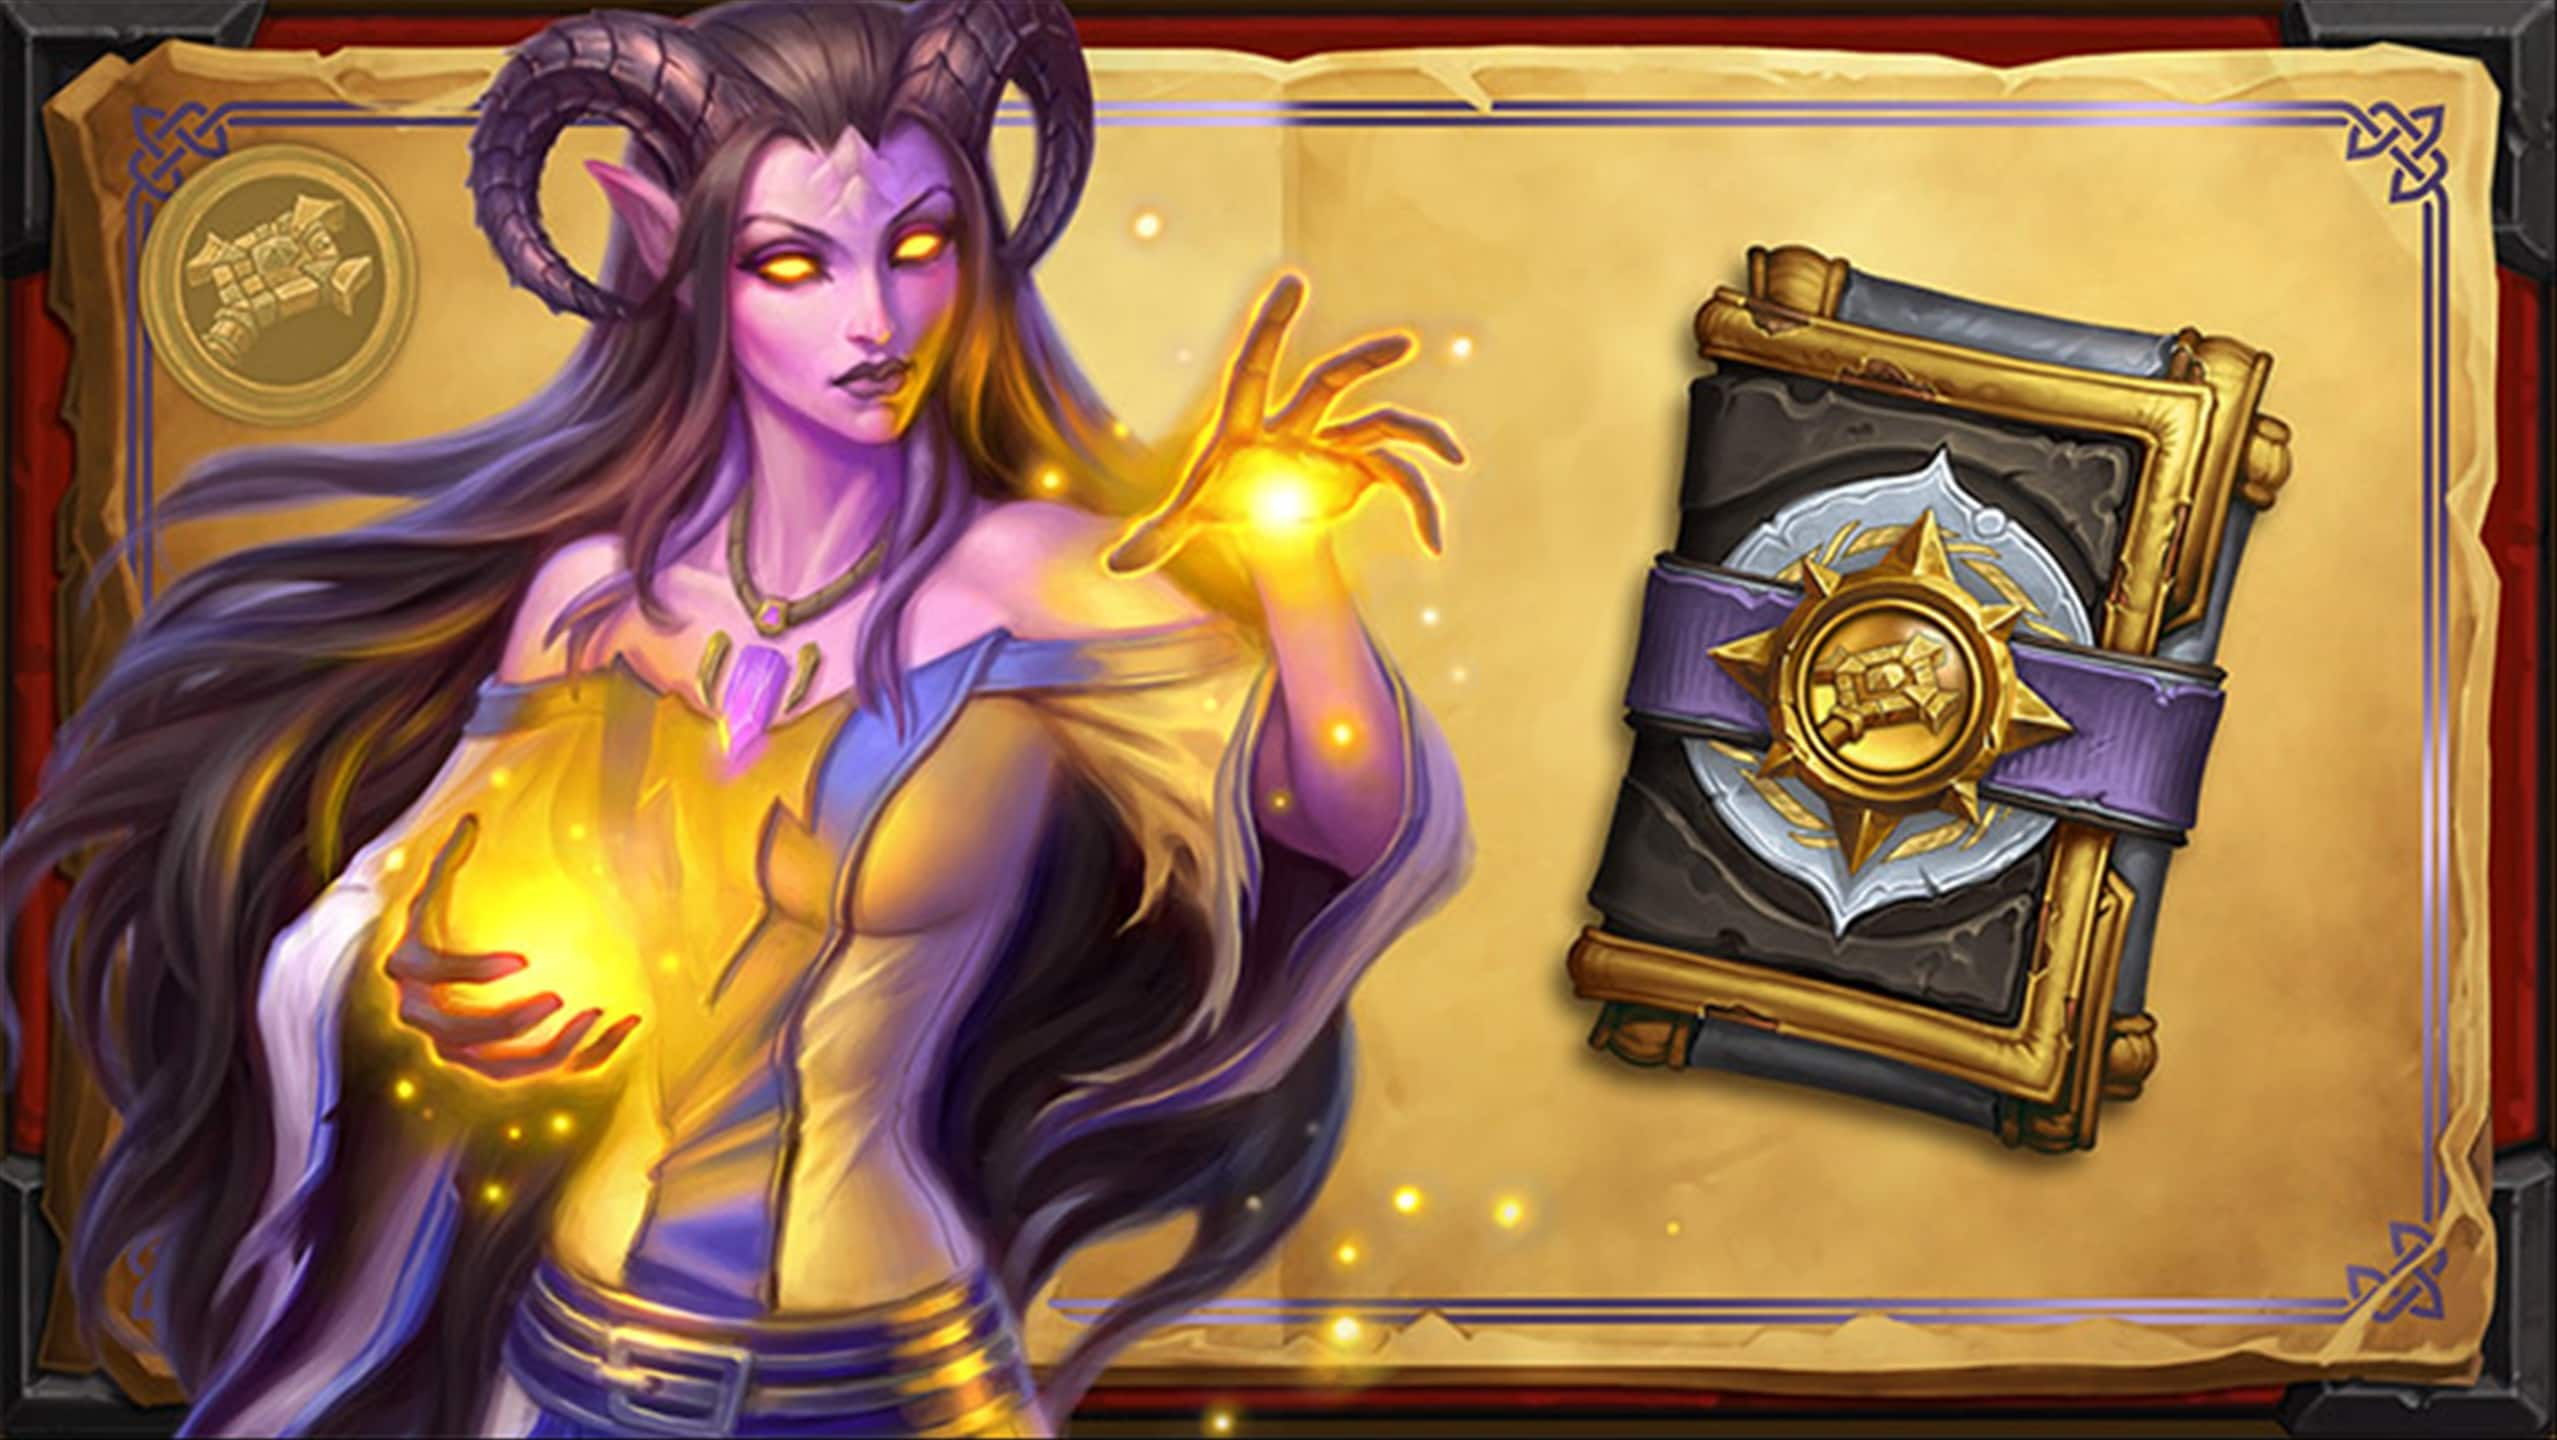 Blizzard Hearthstone's latest updates includes 35 new collectible card Wailing Caverns Mini-Set